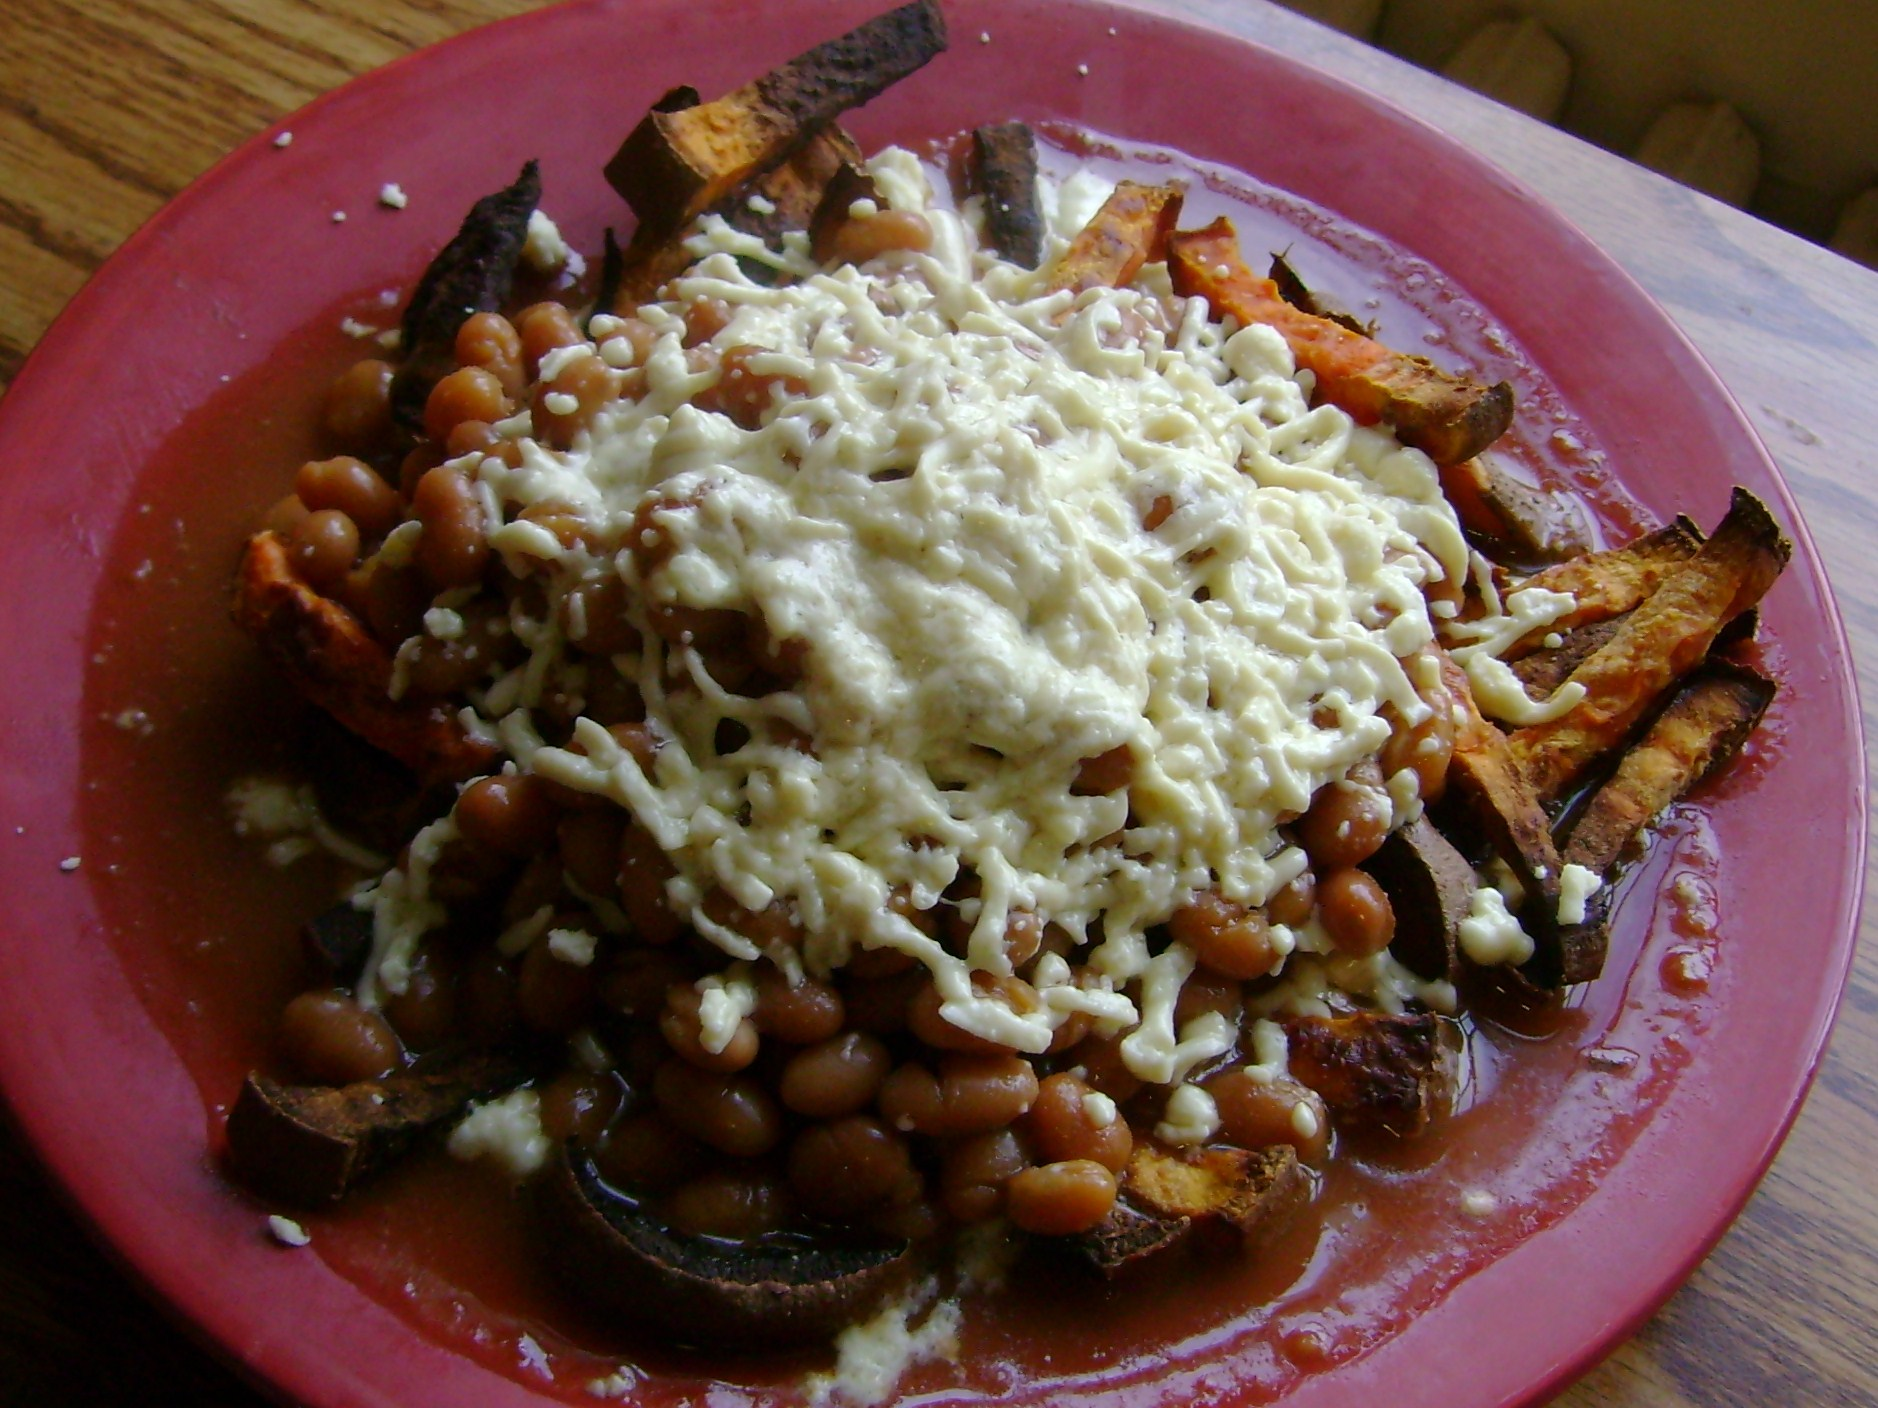 Sweet Potato Fries, BBQ Baked Beans, Daiya Mozzarella